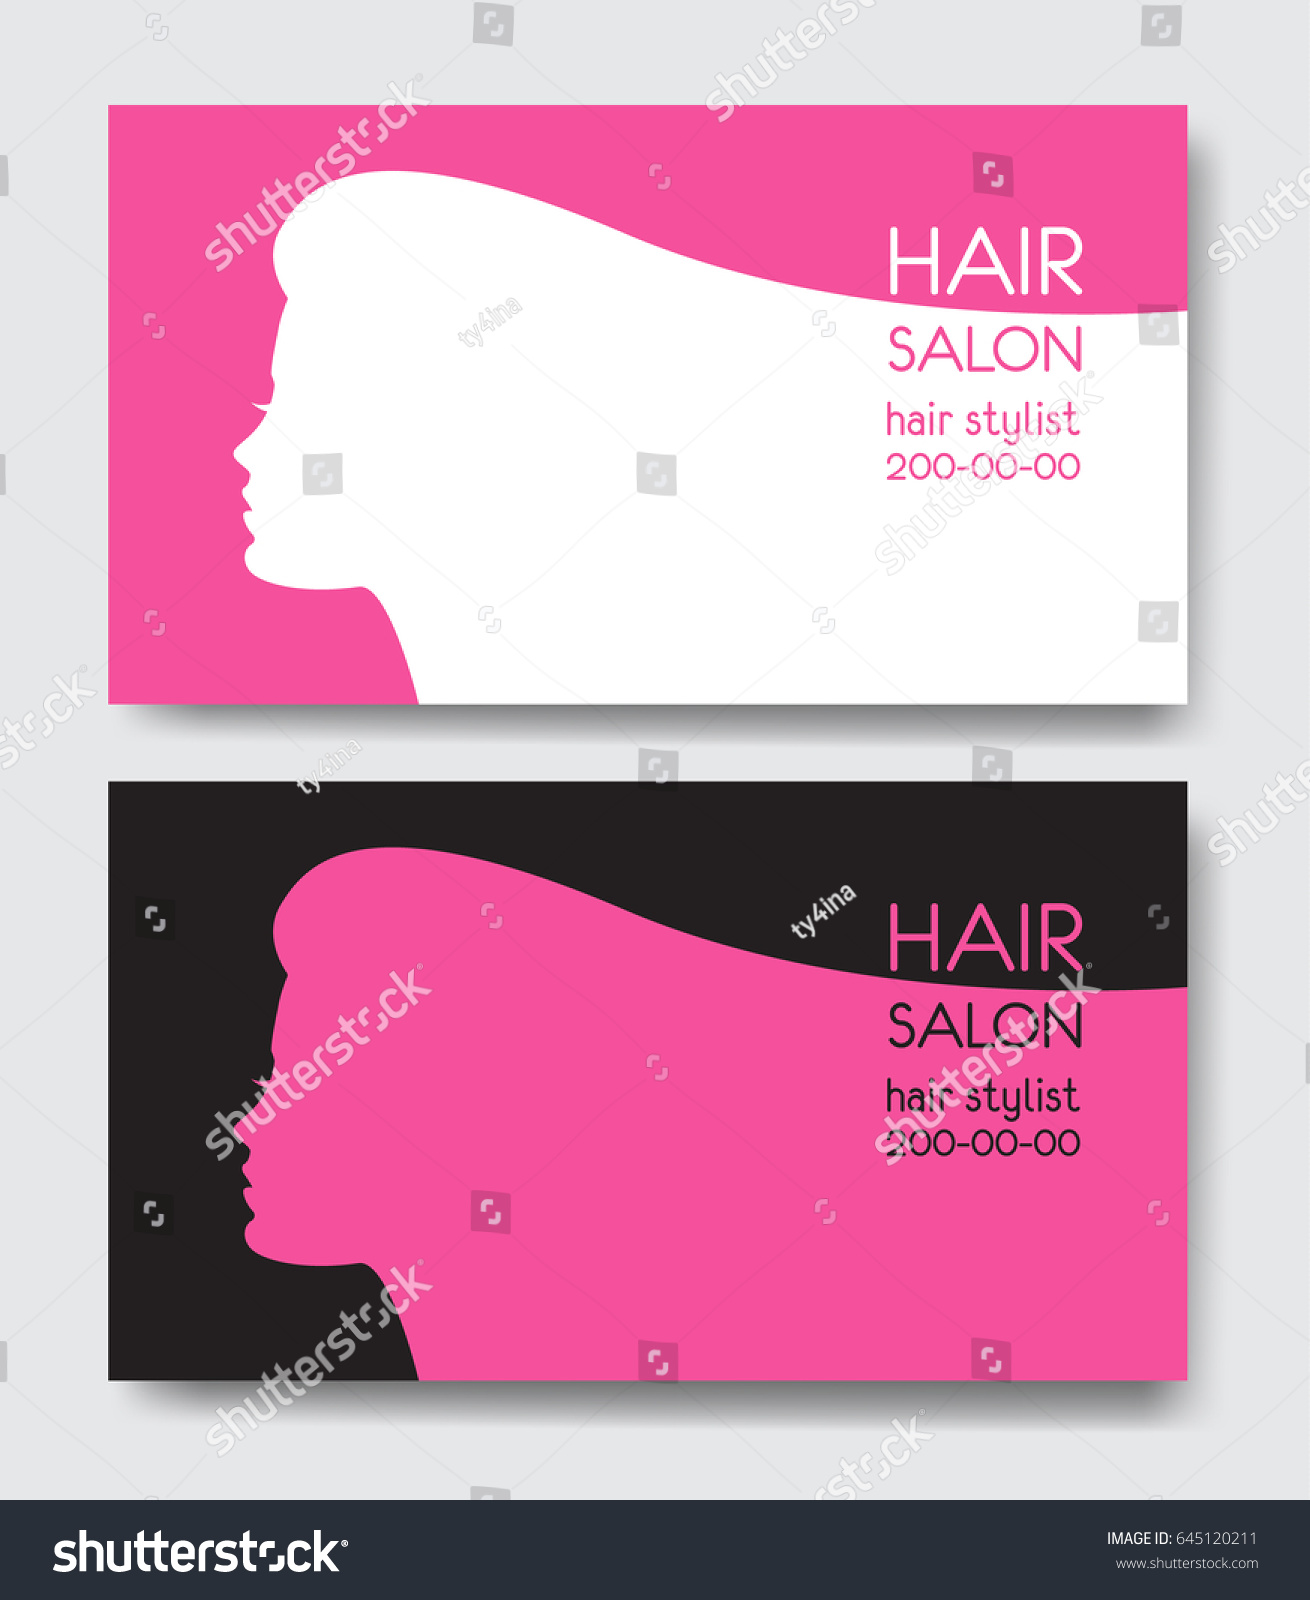 Fresh pics of salon business cards business cards and resume - Beauty salon business ...